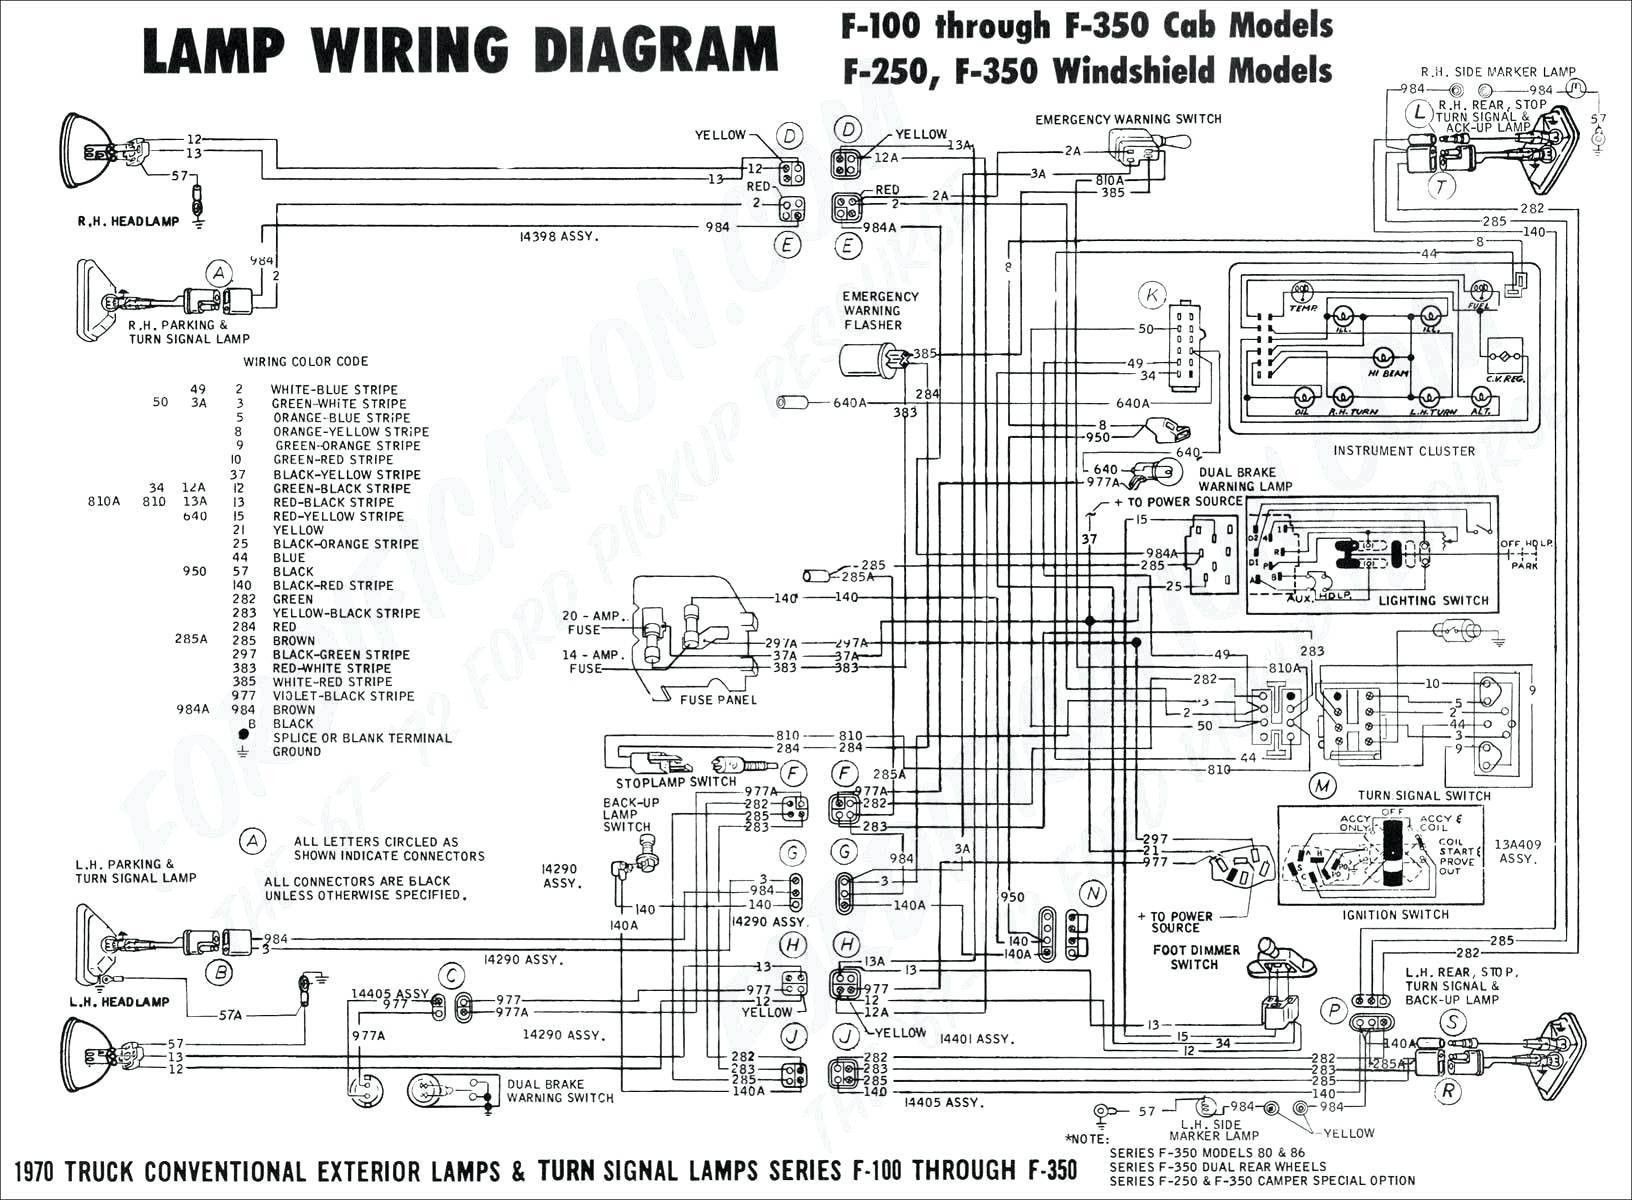 1986 Chevy Truck Wiring Diagram 2005 Chevy Silverado Ignition Wiring Diagram Fresh Chevy Silverado Of 1986 Chevy Truck Wiring Diagram